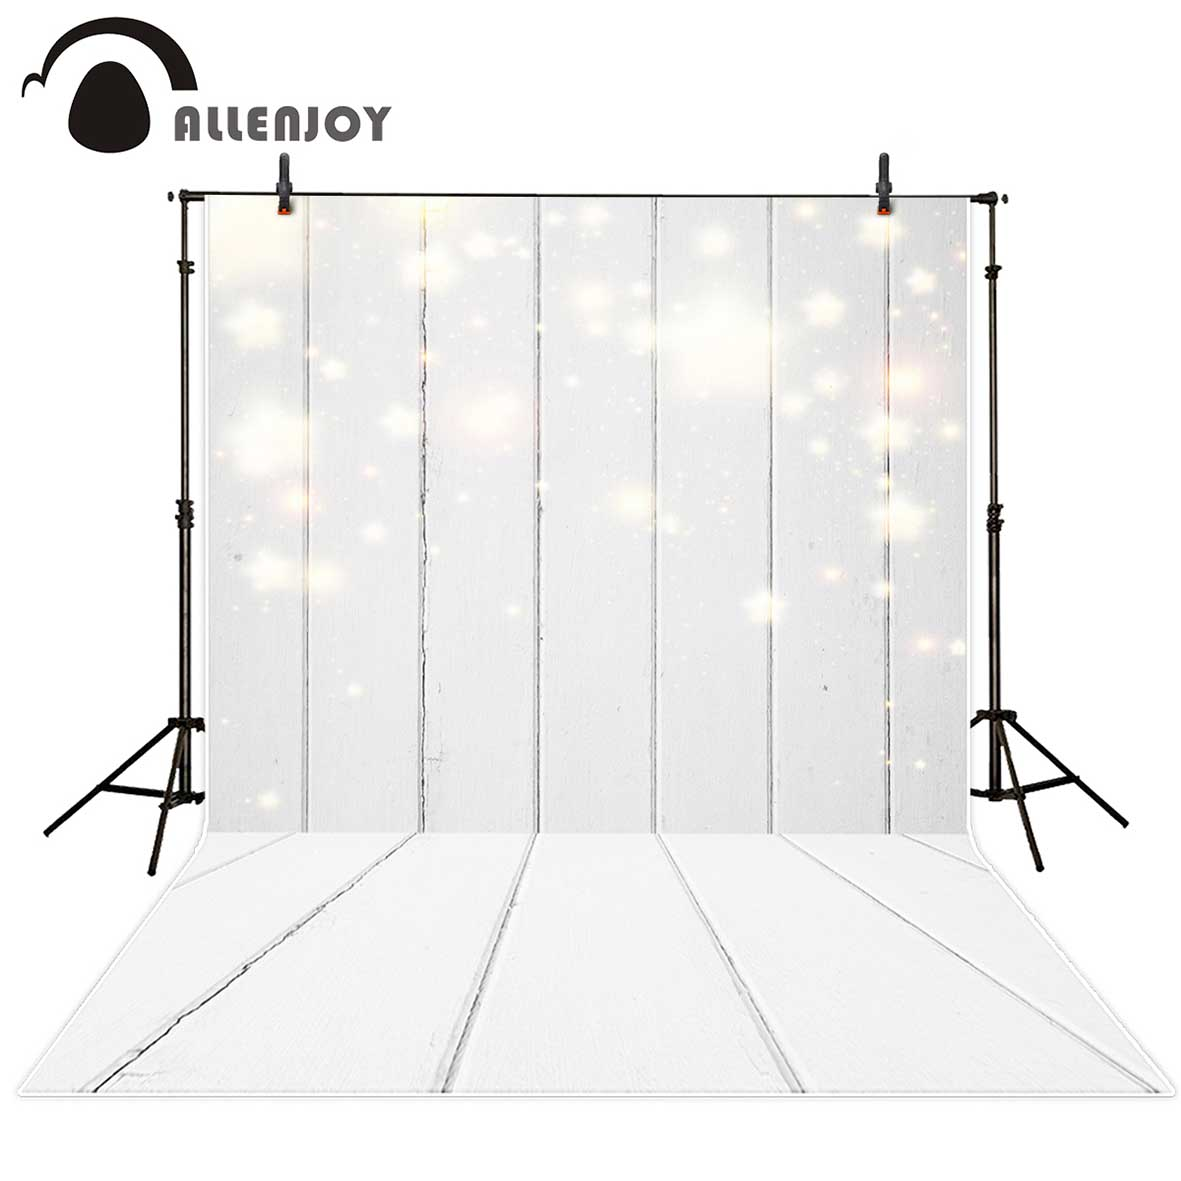 Allenjoy backgrounds for photo studio White board children light illusory children new background photocall customize backdrop